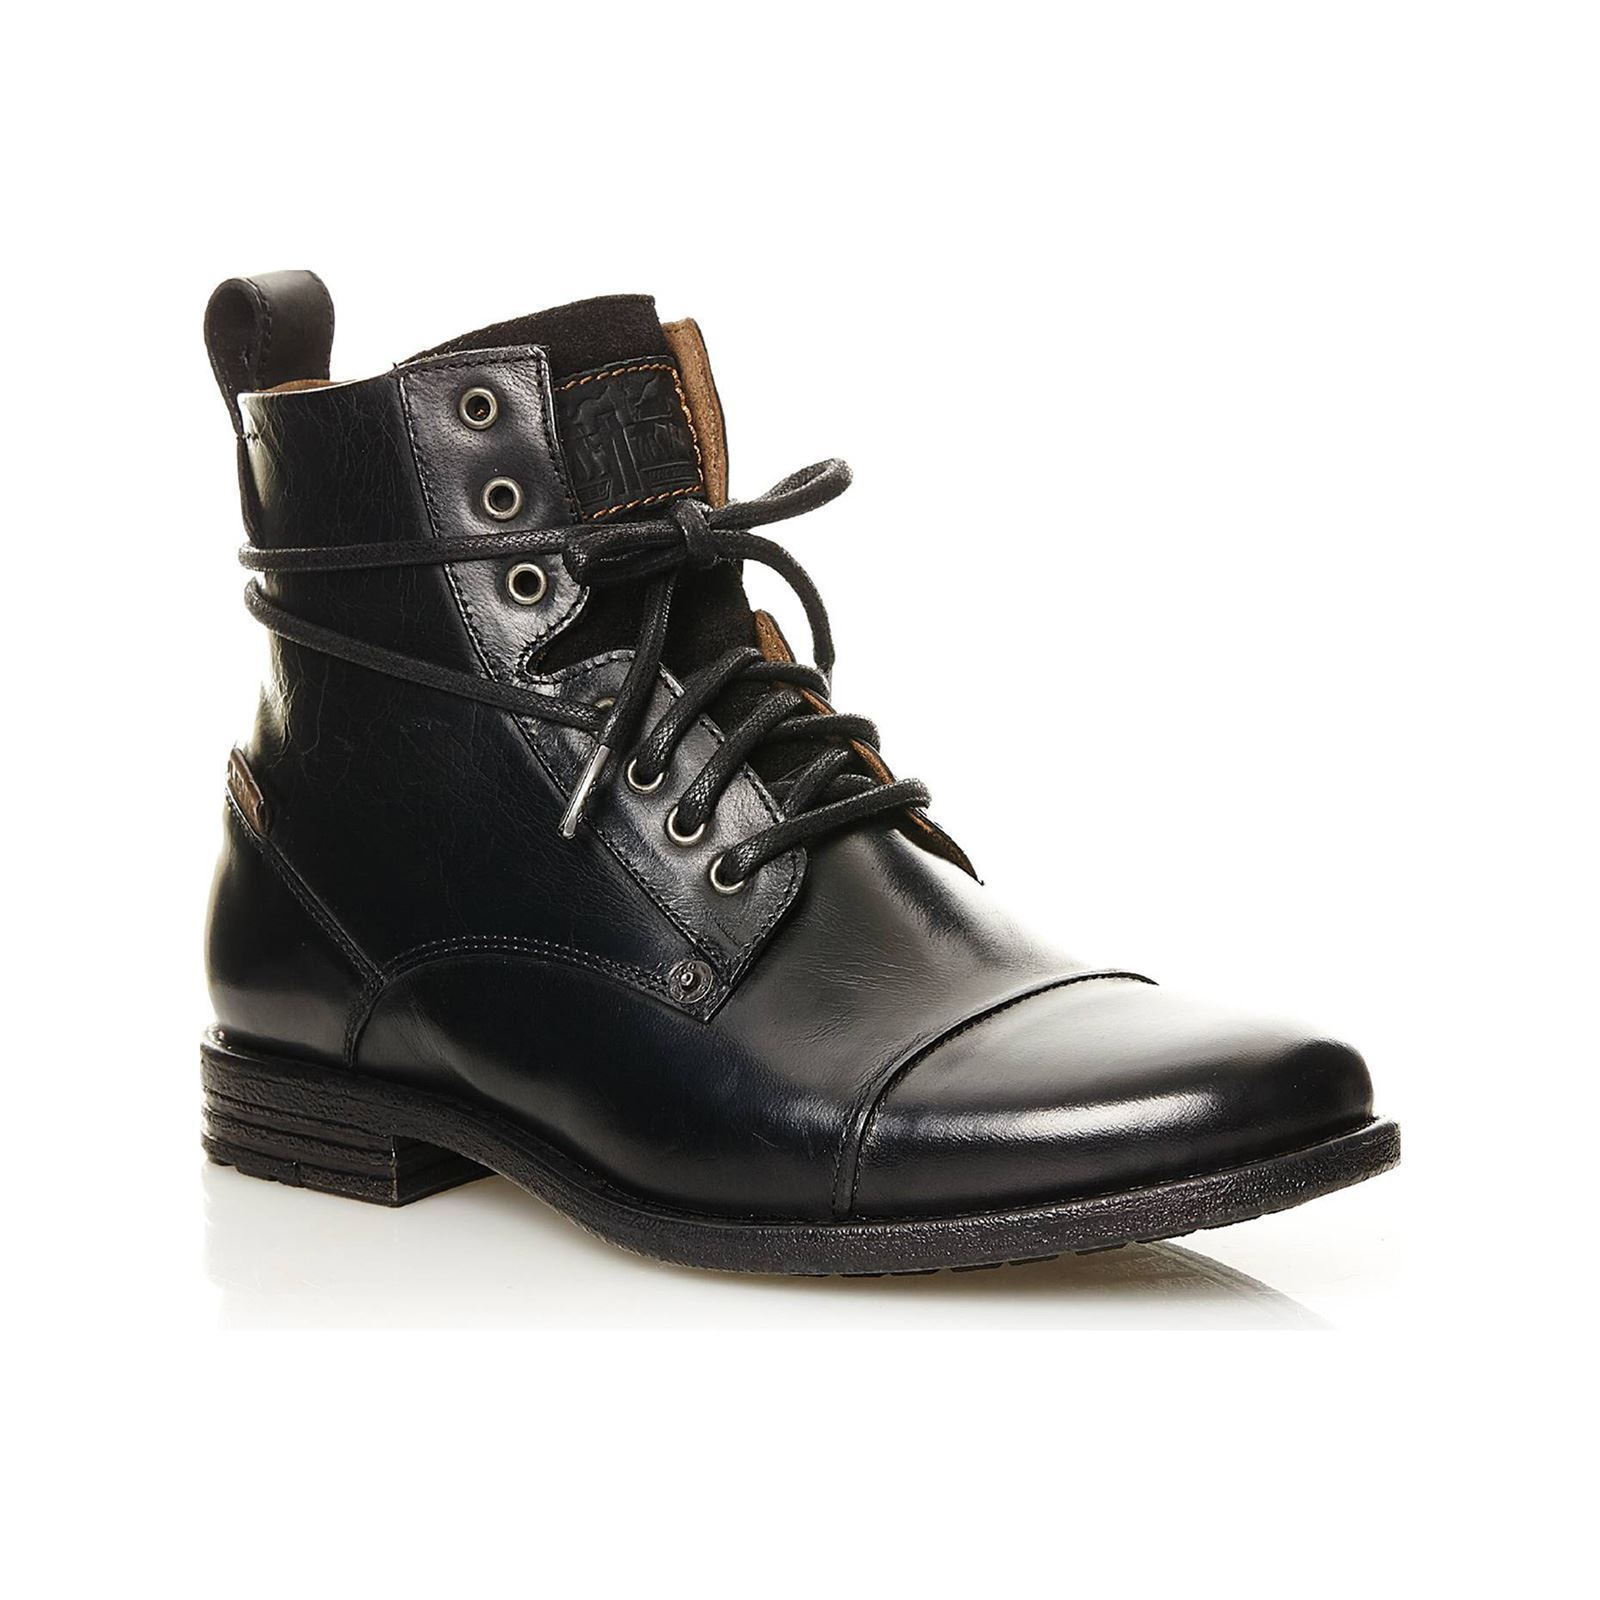 Levi's Emerson Lace Up Negro BsE4Ty6